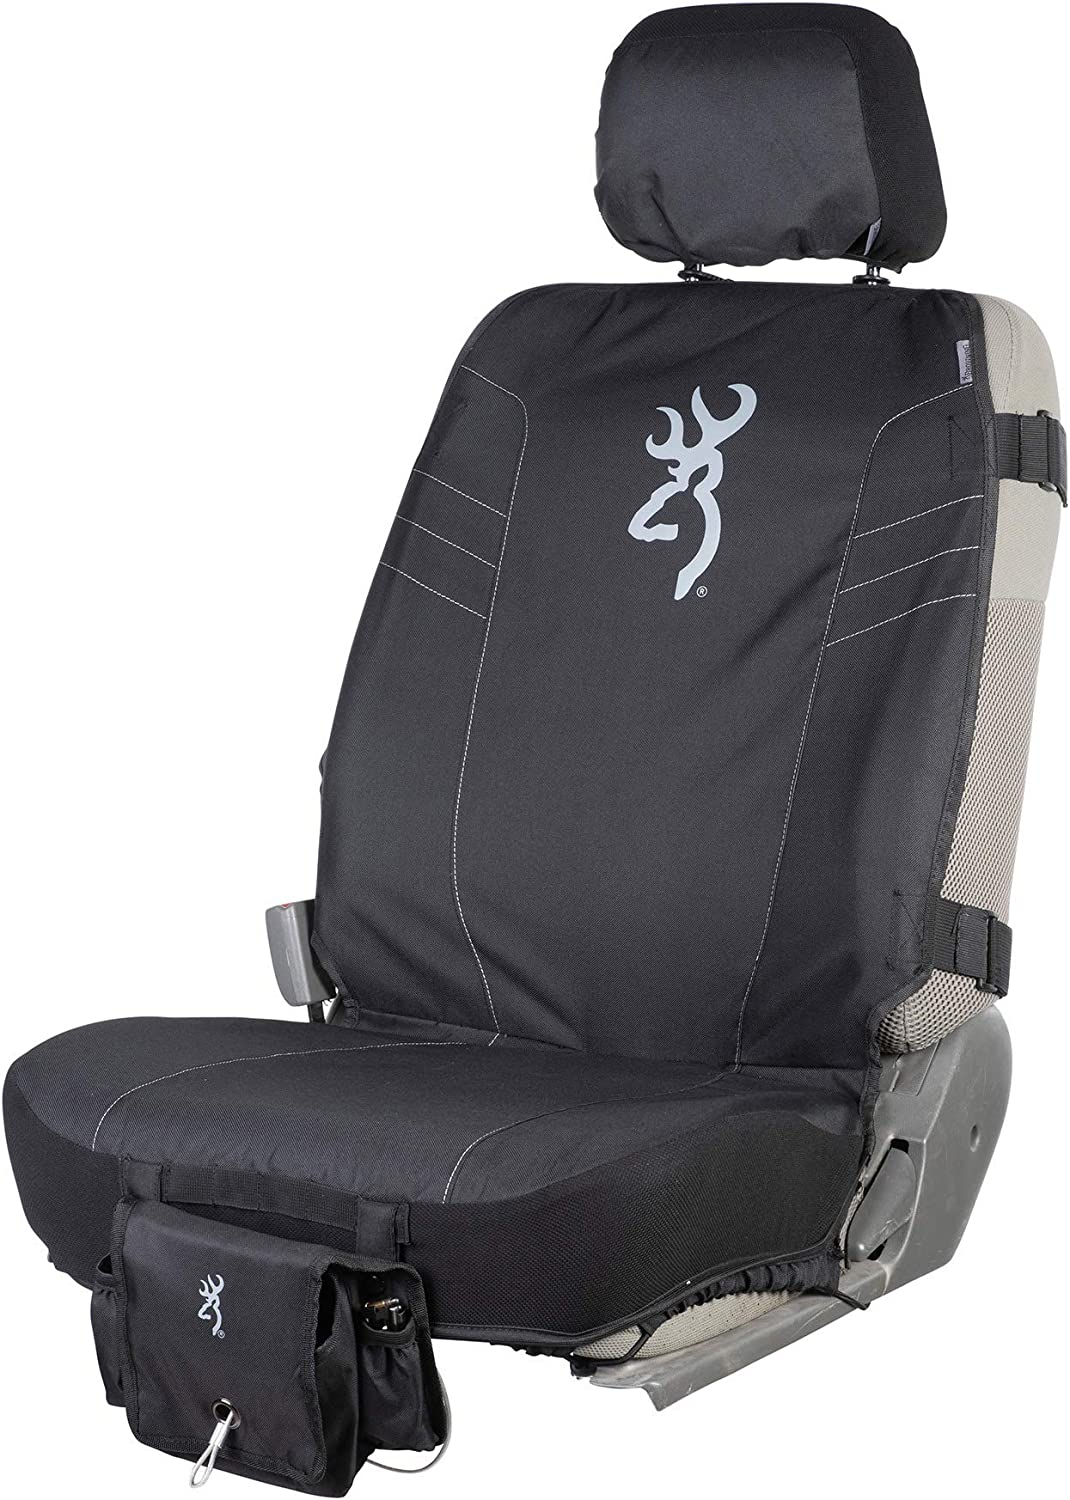 Browning Low Back Tactical Seat Cover Black w//White Buckmark Single